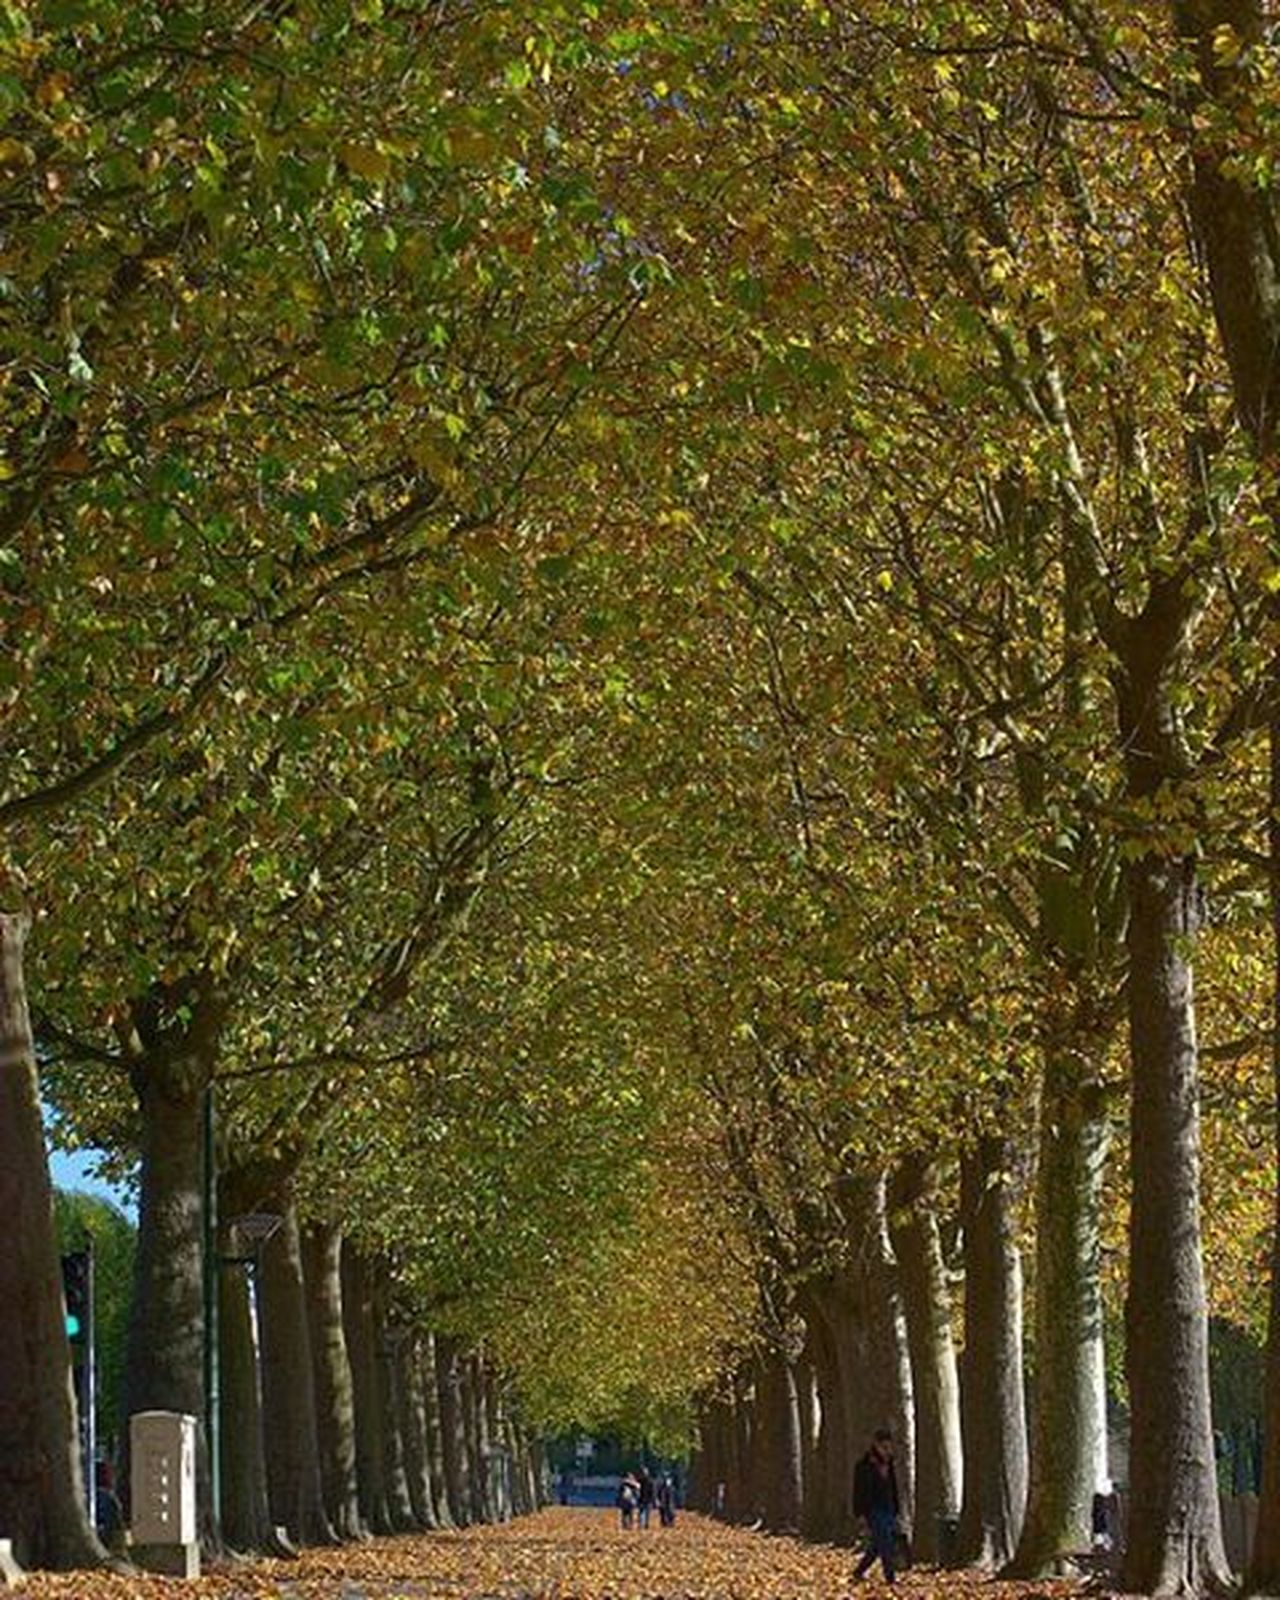 Such a lovely day in Caen ! Praerie Normandie Normandy Normandia  Insta_normandy IgersNormandie Promenade France Francia Francepower Travel Travelgram Mytravelgram Mytravelreviews Igers Igersfrance Instatravel Igtravel Calvados Nature Instanature TreePorn Leaves Pictureoftheday gramoftheday ic_trees tagsta tagsta_nature nofilter